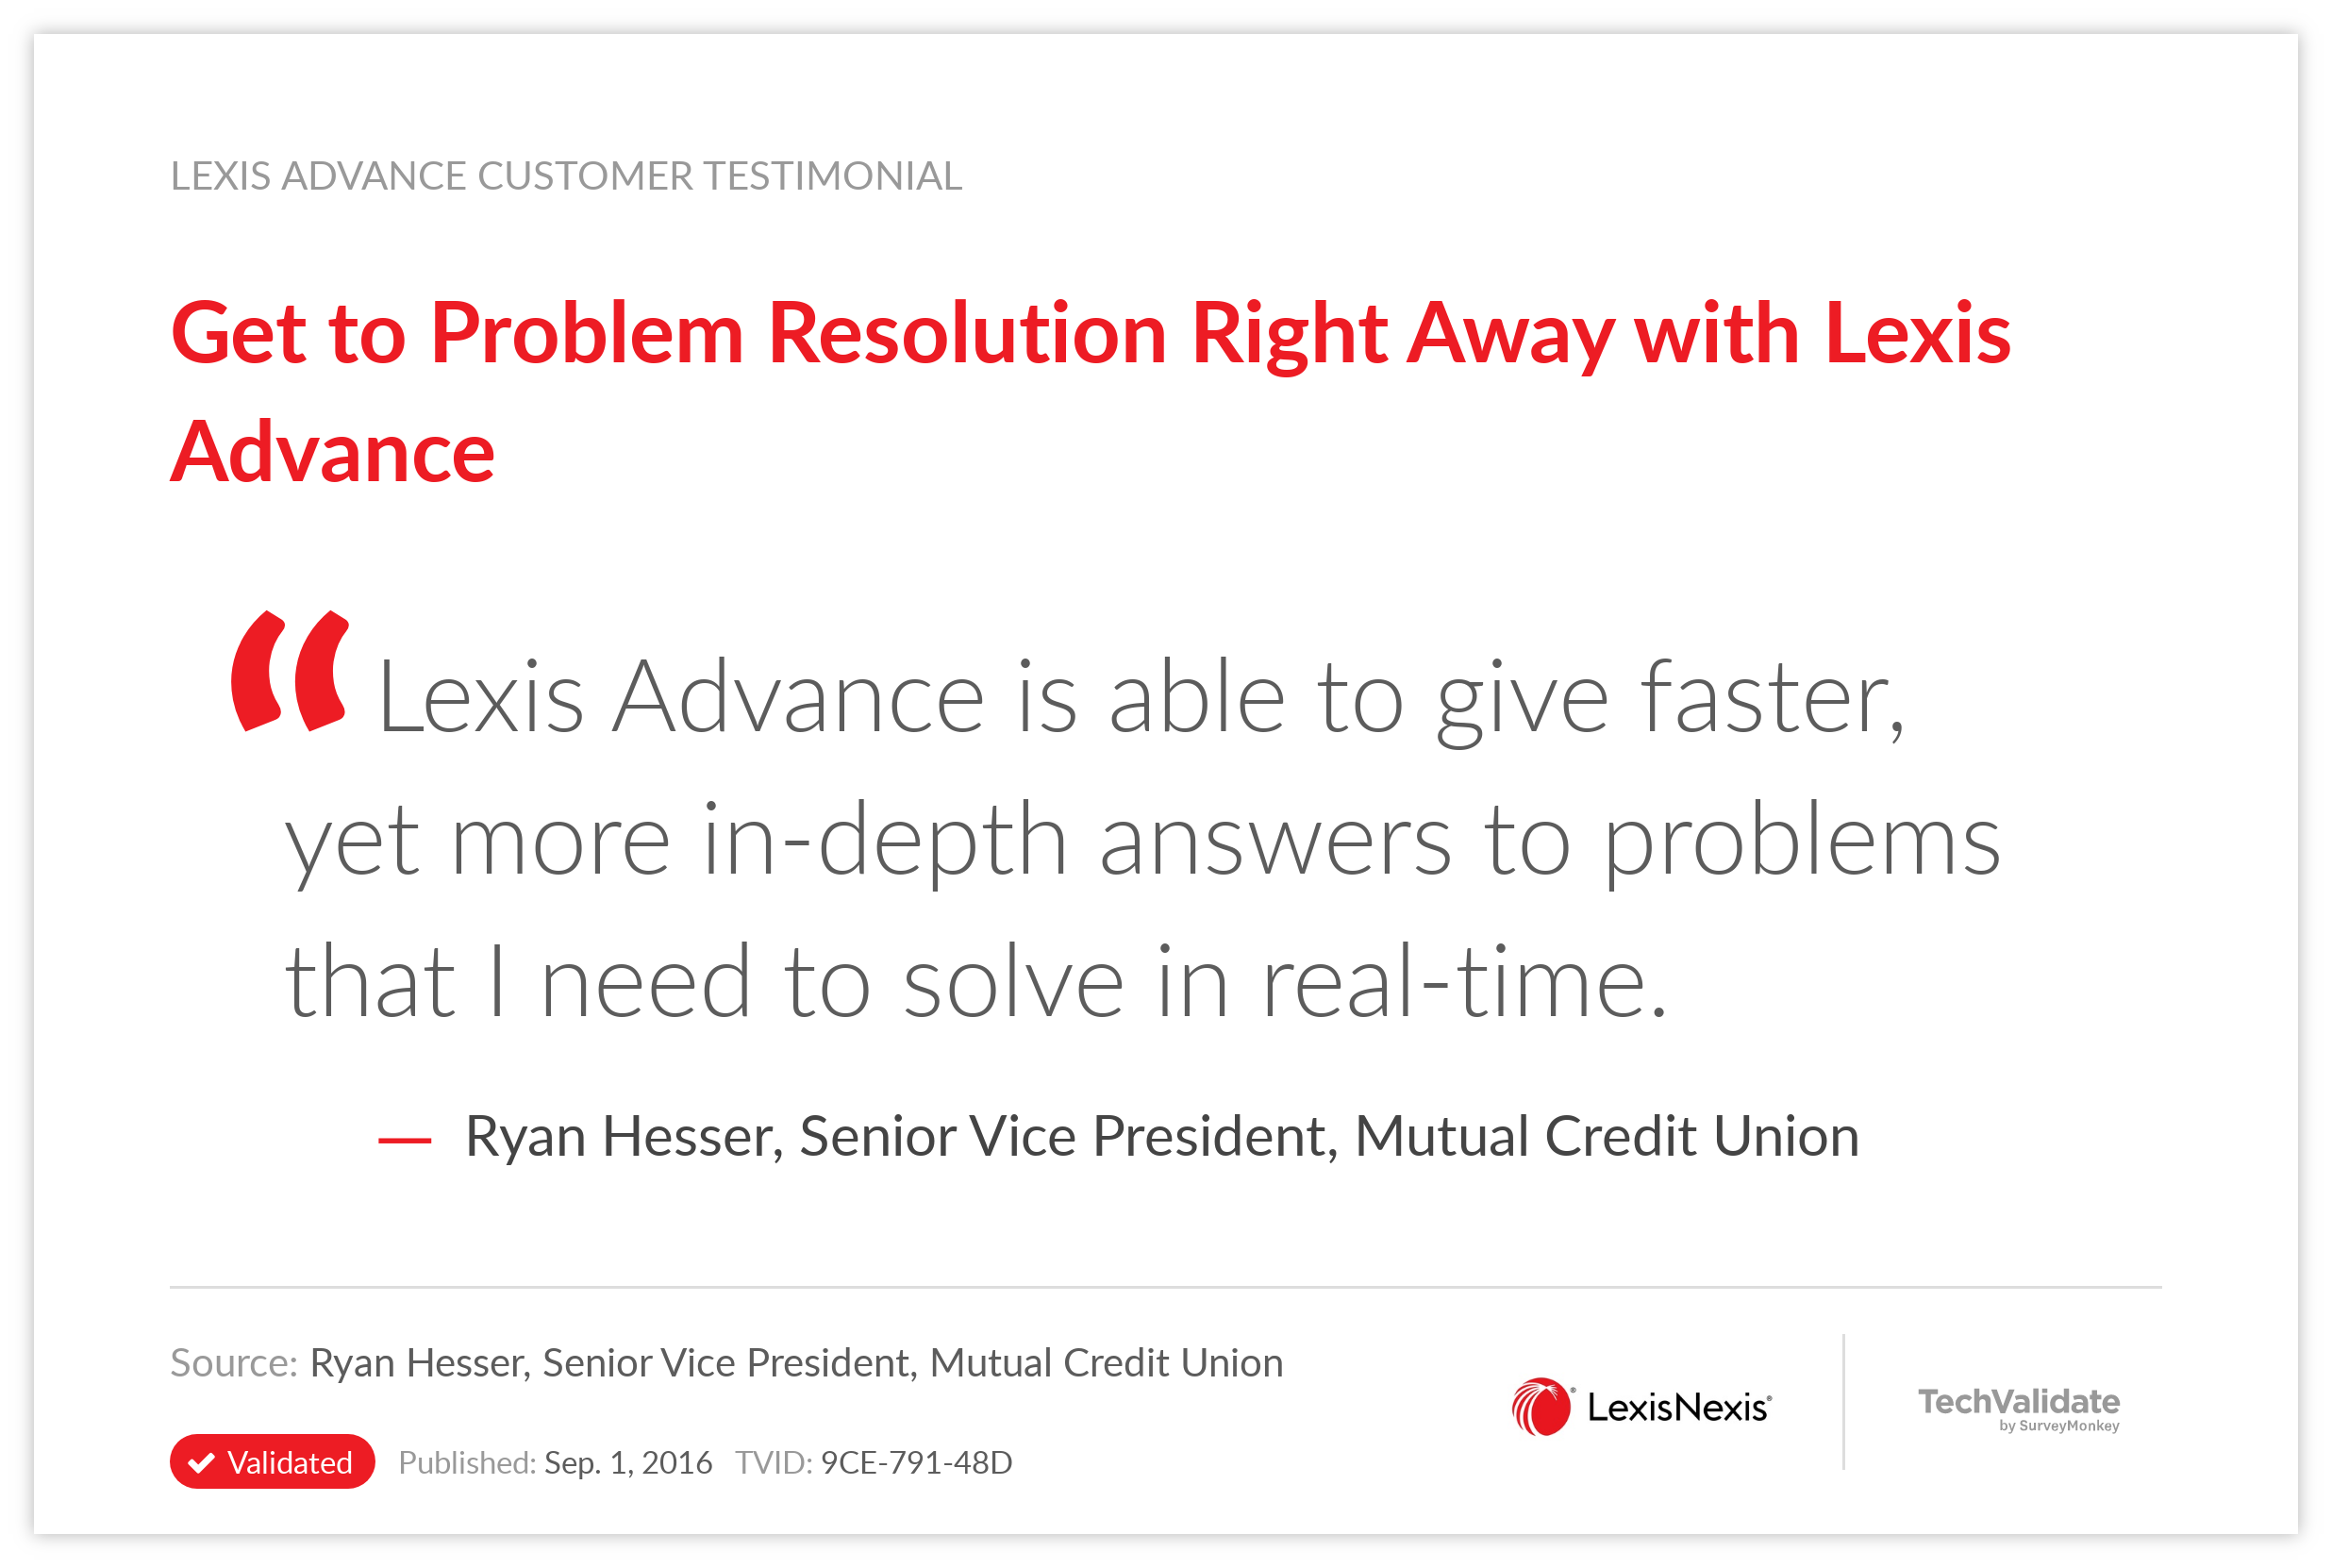 Get to Problem Resolution Right Away with Lexis Advance